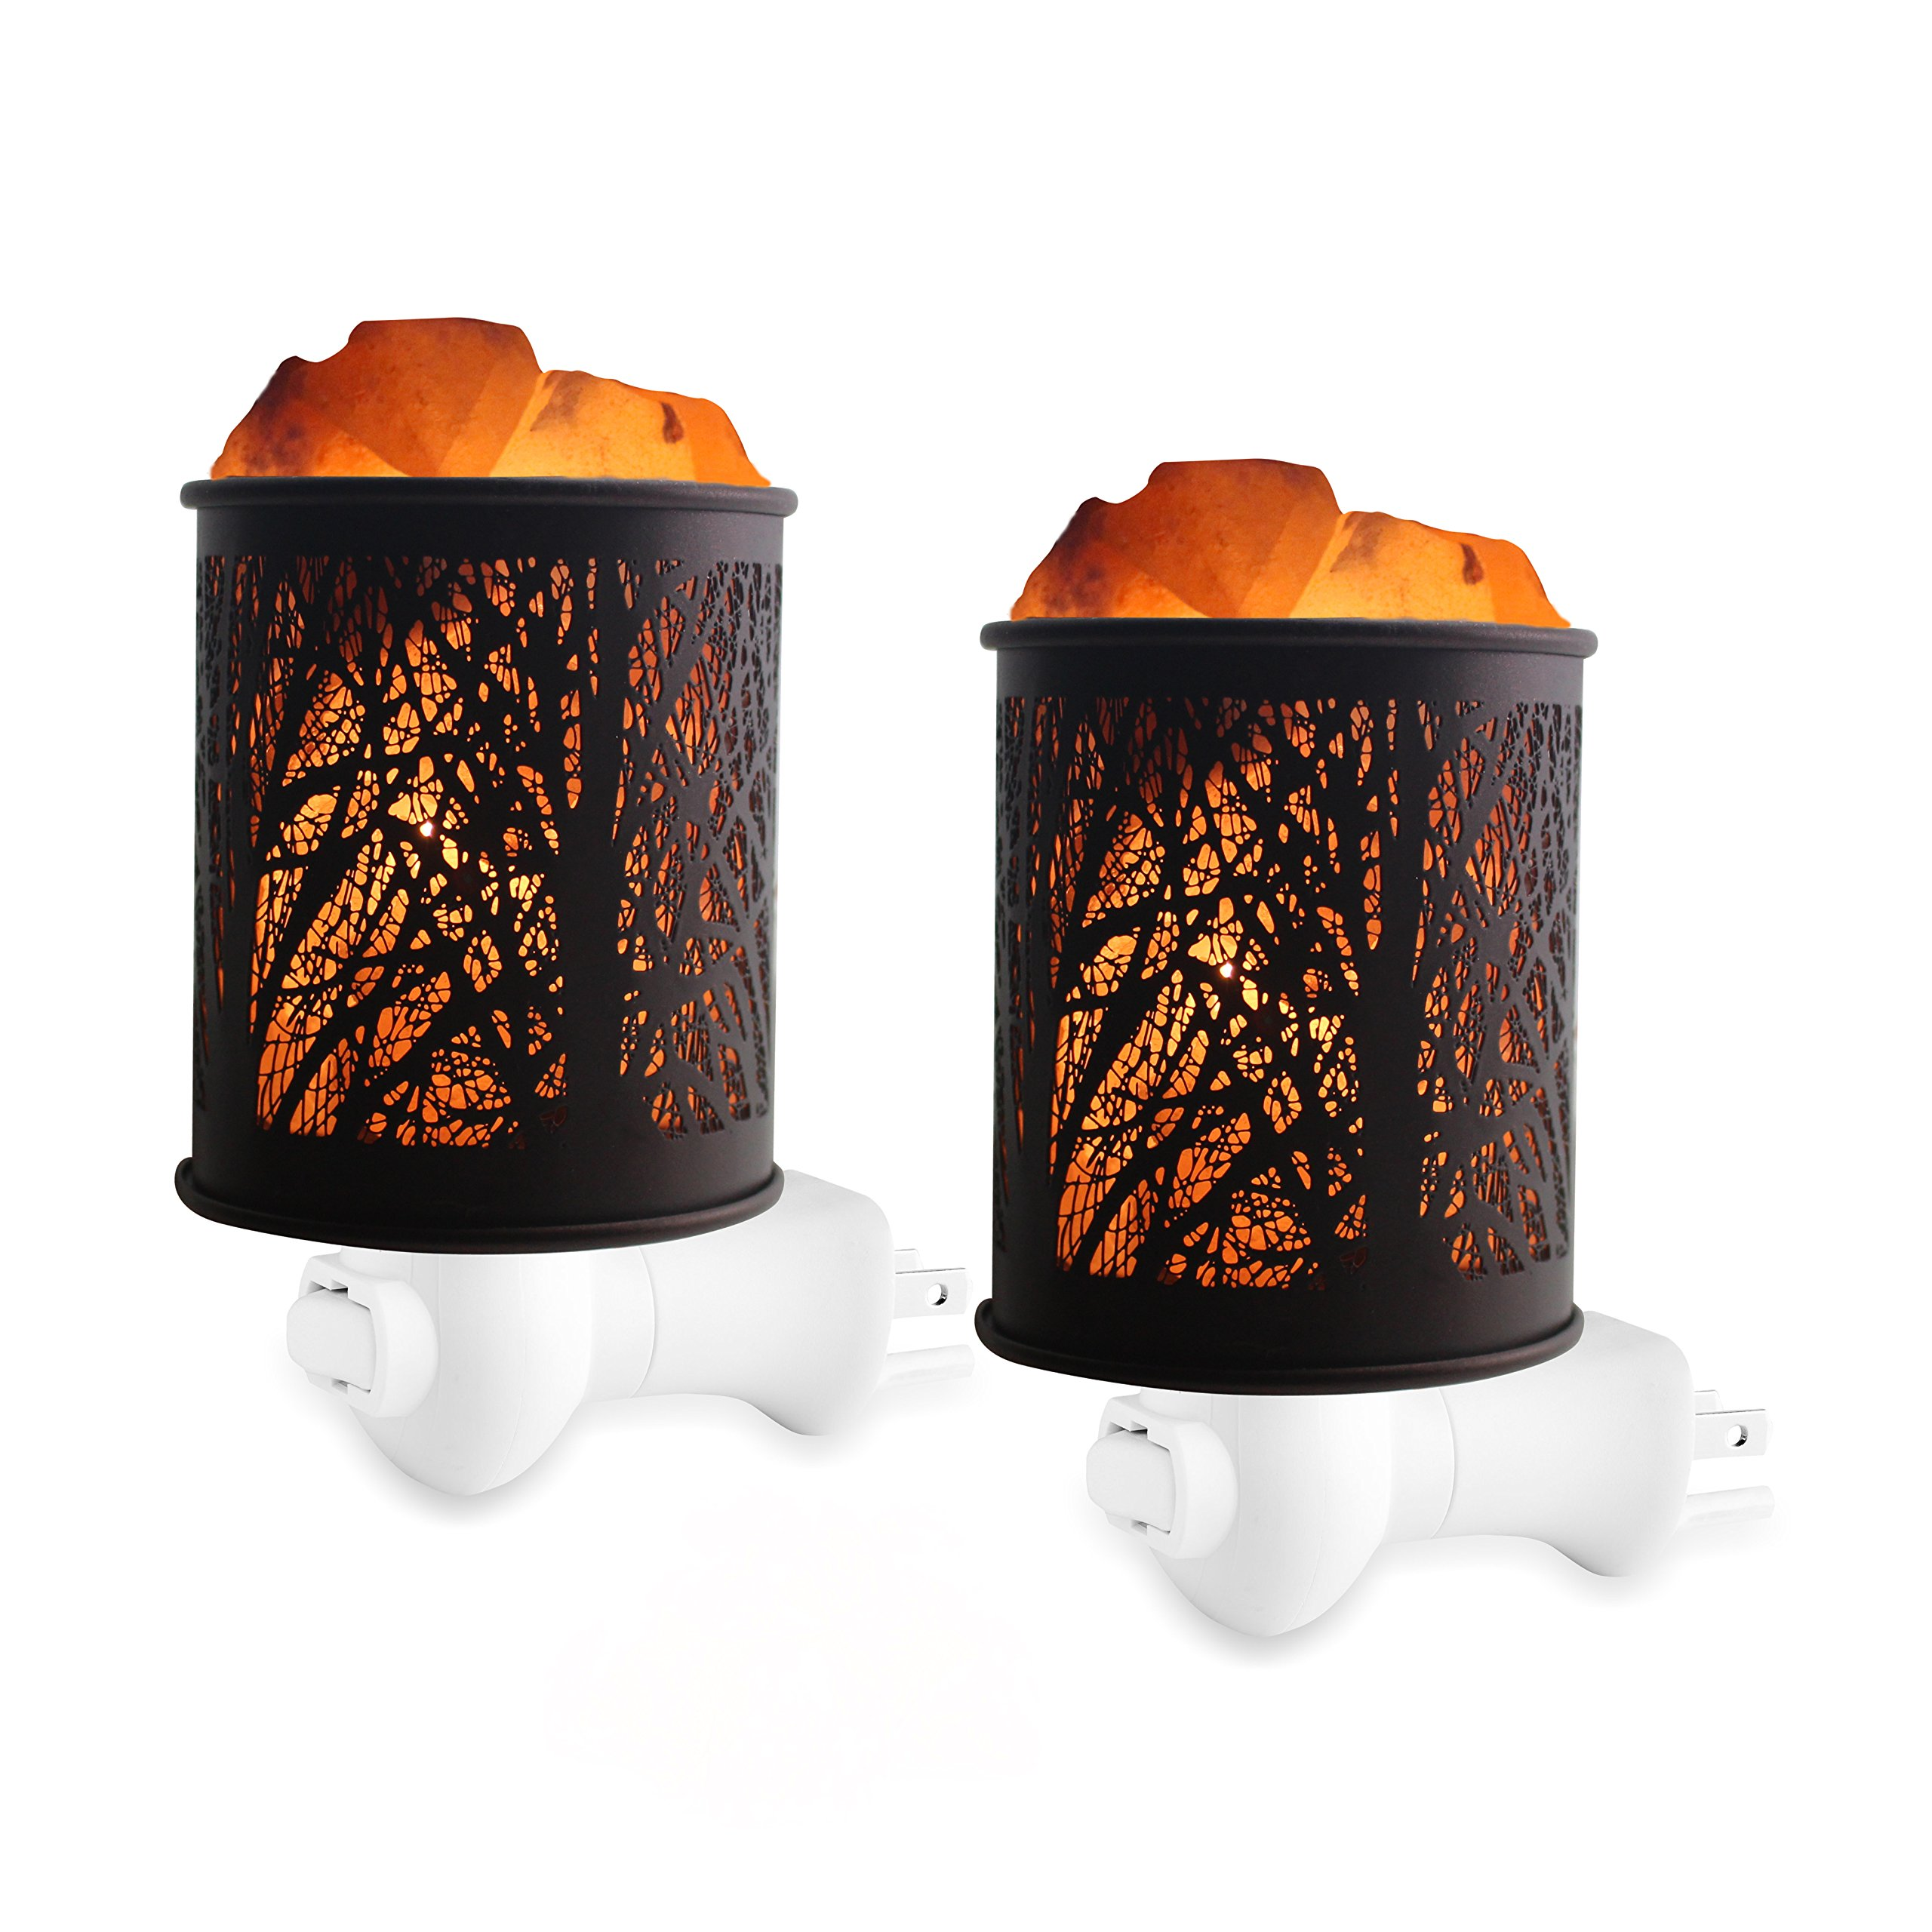 Natural Himalayan Salt Rock Lamp,Salt Night Light,Natural Himalayan Salt Rock Lamp,Mini Crystal Wall Light Night Lights,ETL Approved Wall Plug for Decoration and Lighting,2 Pack by Shineled (Image #1)